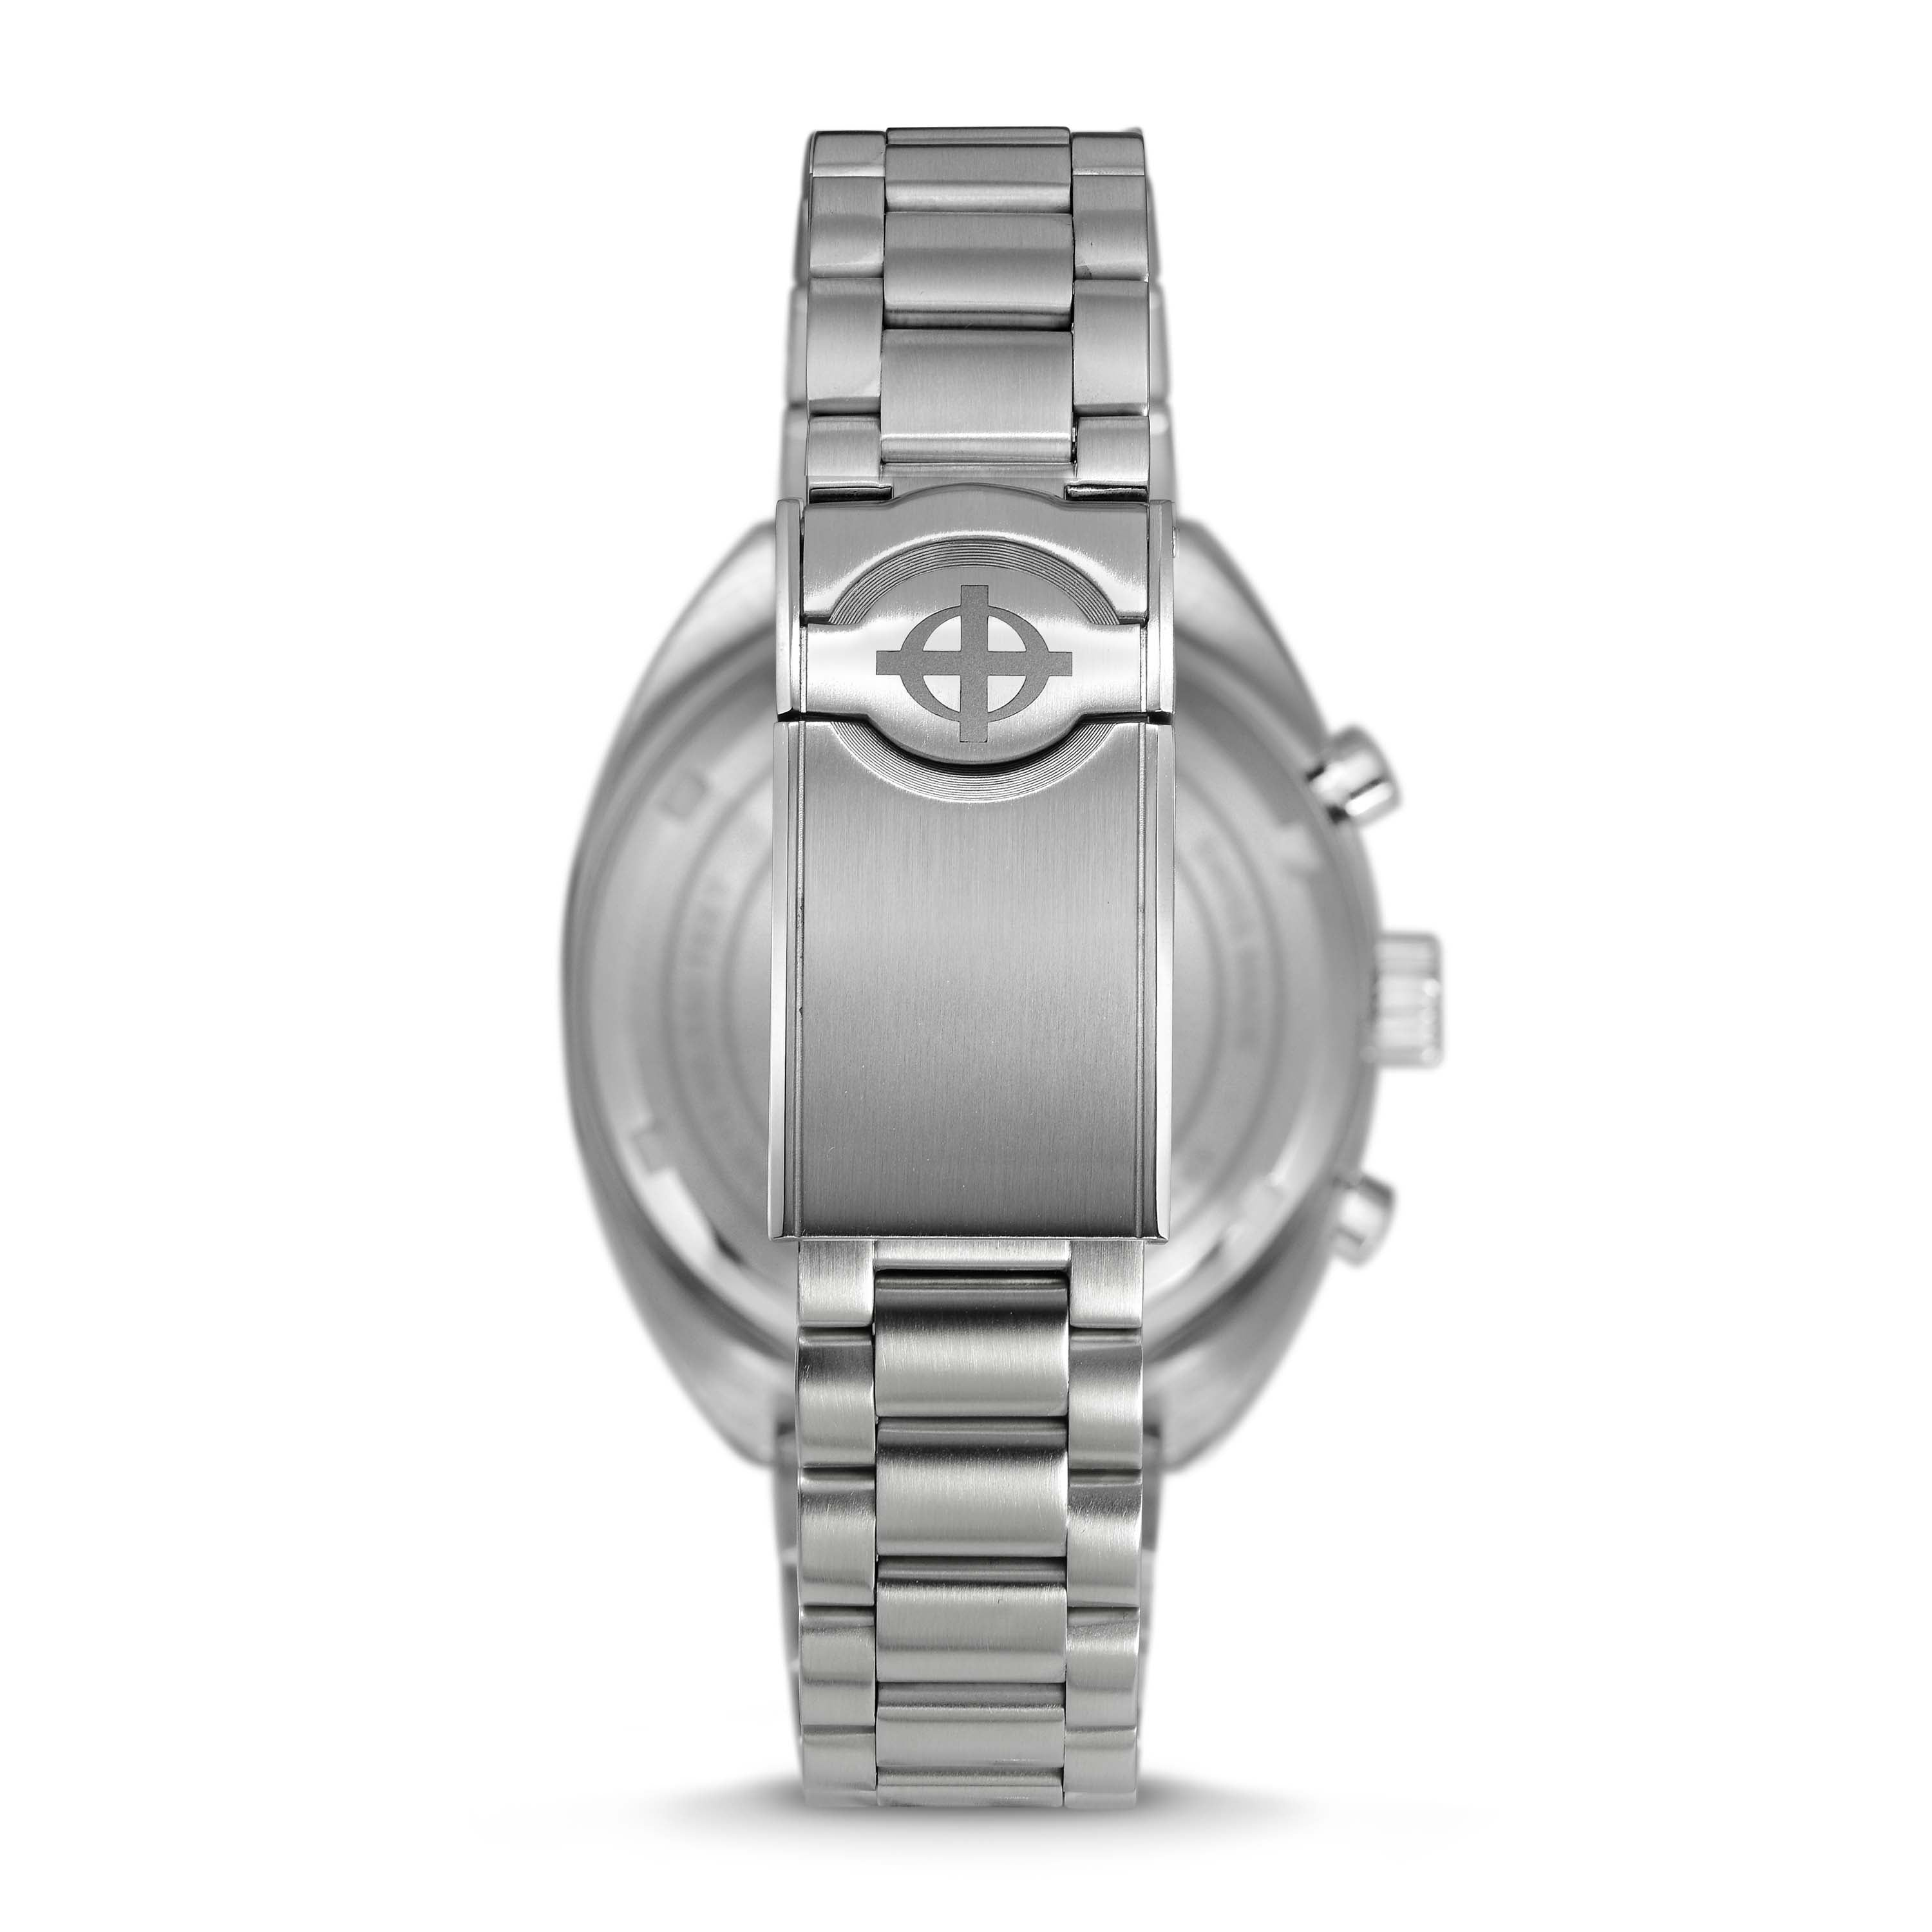 GRANDRALLY QUARTZ STAINLESS STEEL WATCH